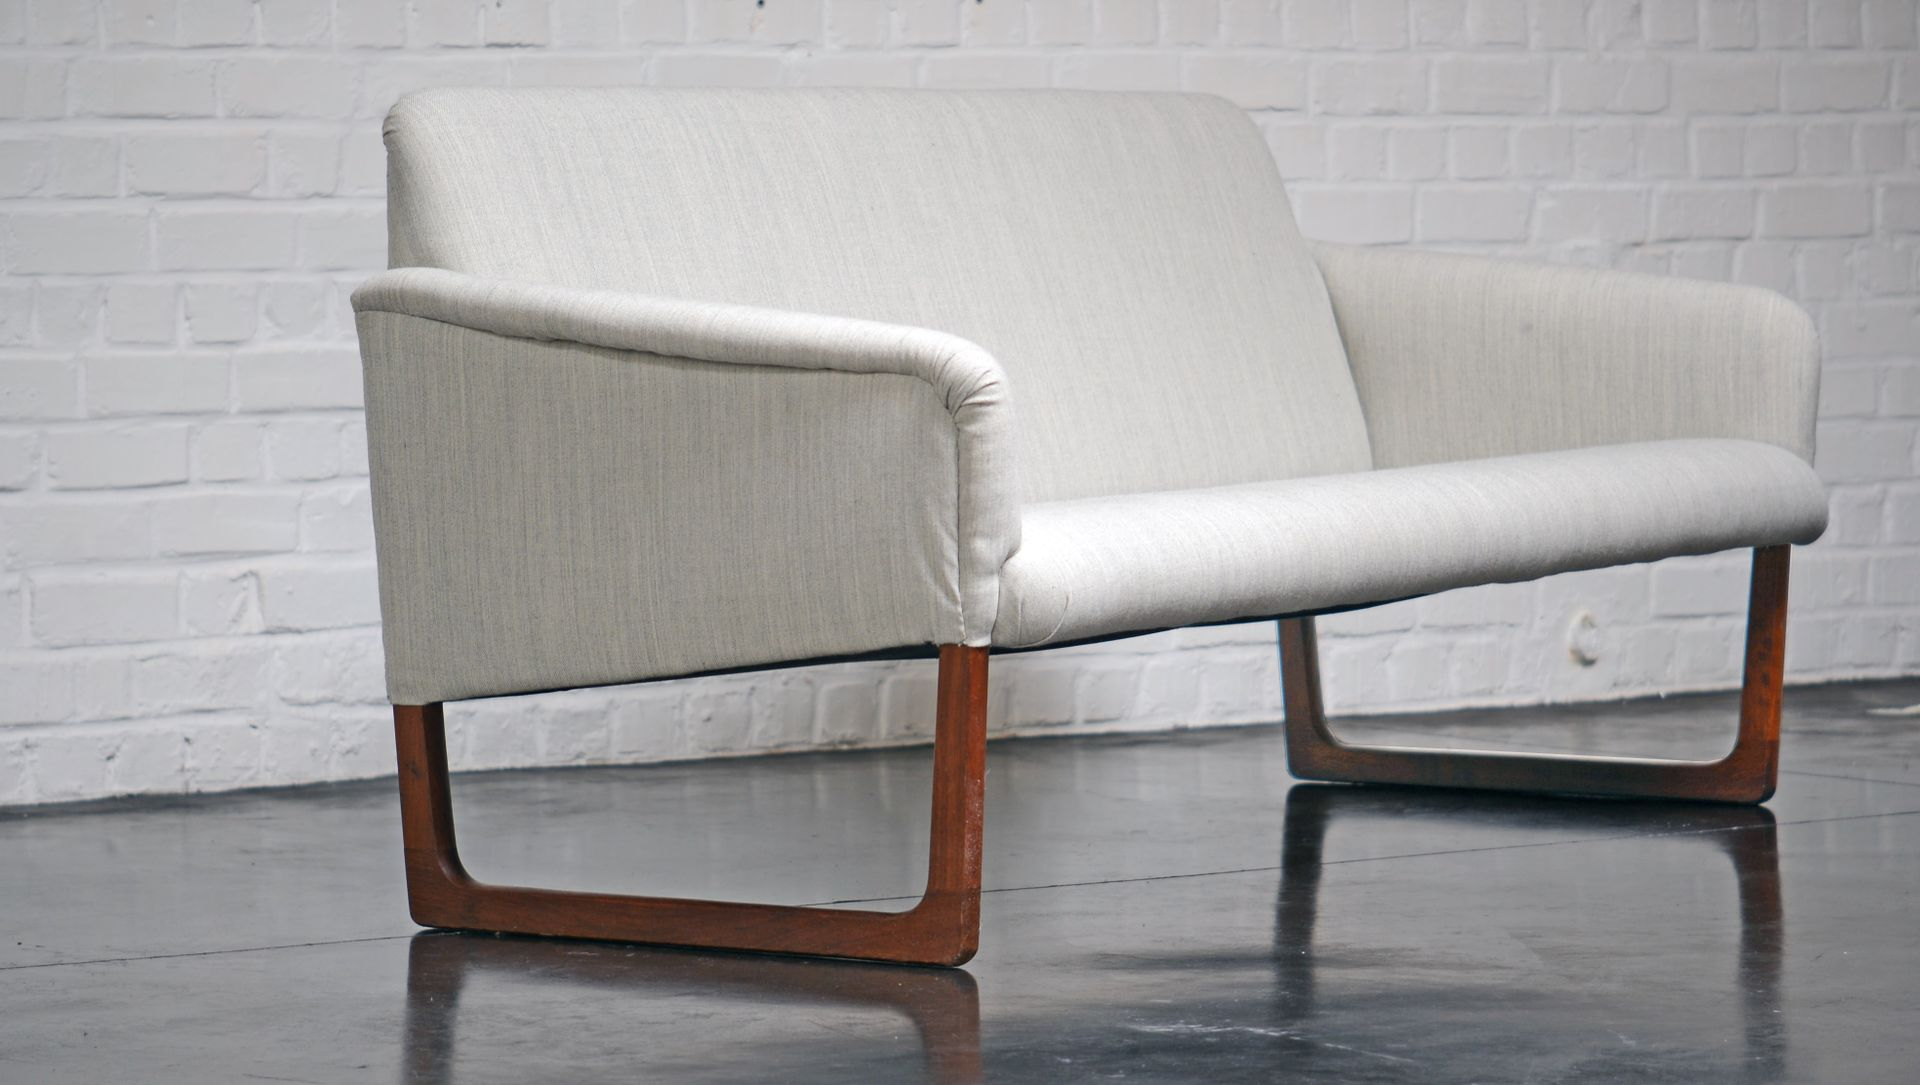 Danish Sofa In Gray Wool And Rosewood 1960s For Sale At Pamono